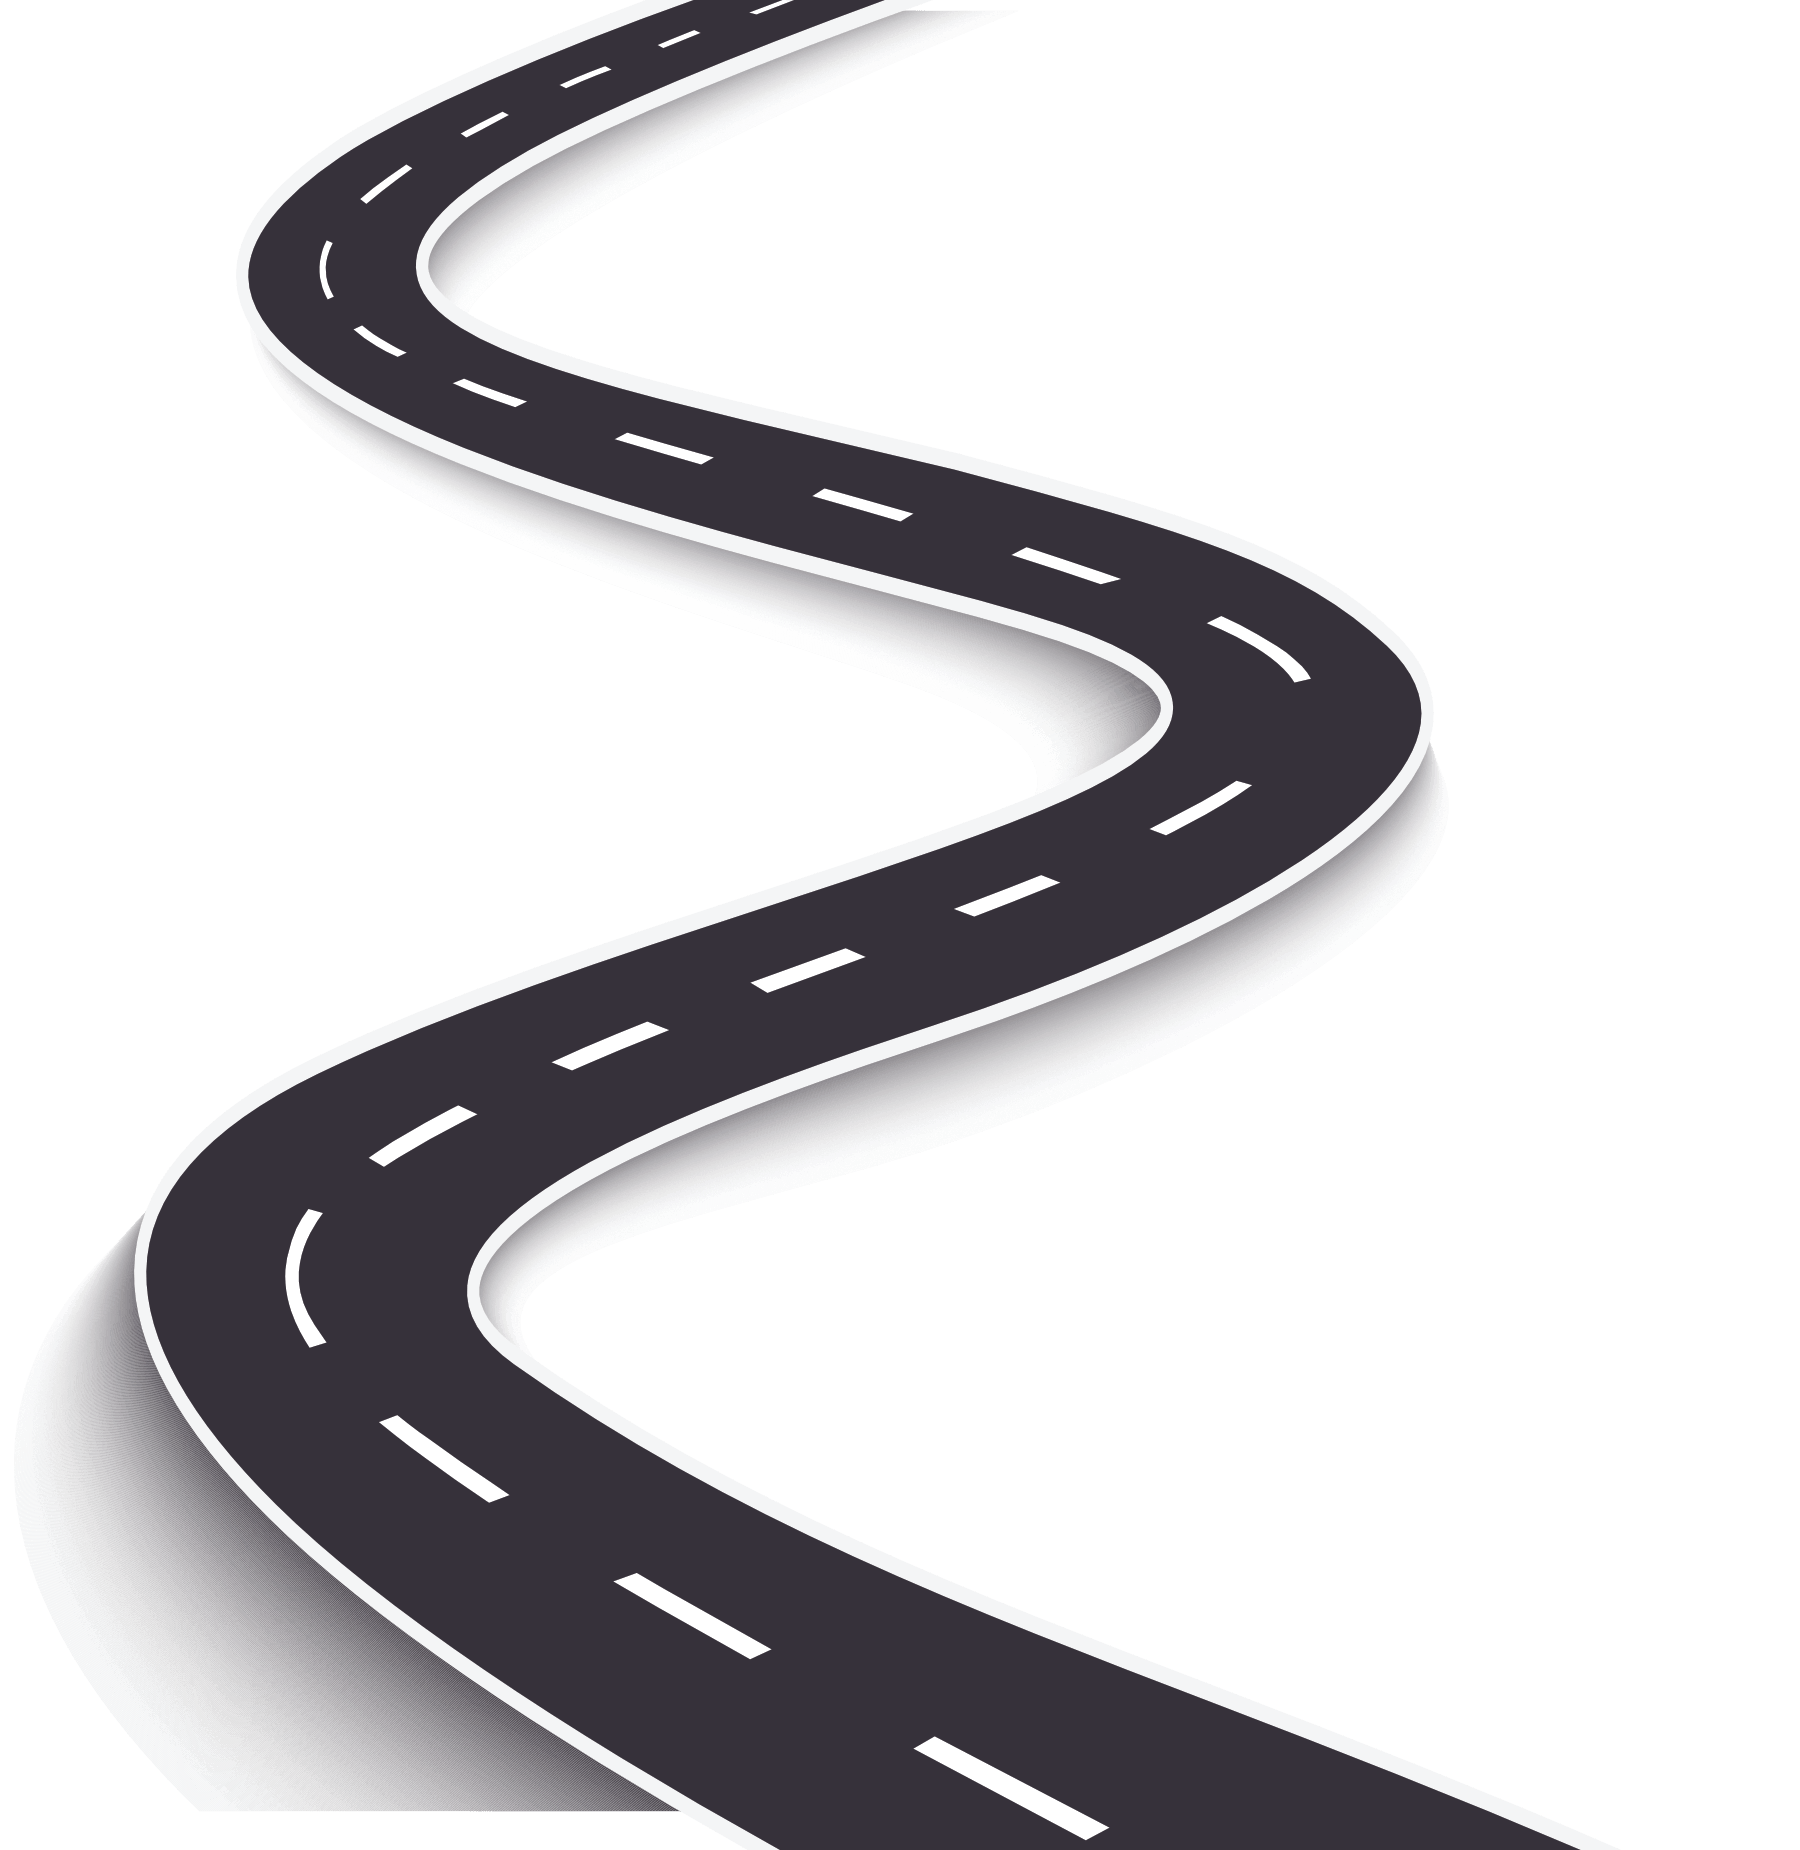 Curvy road png. Contact us industries local